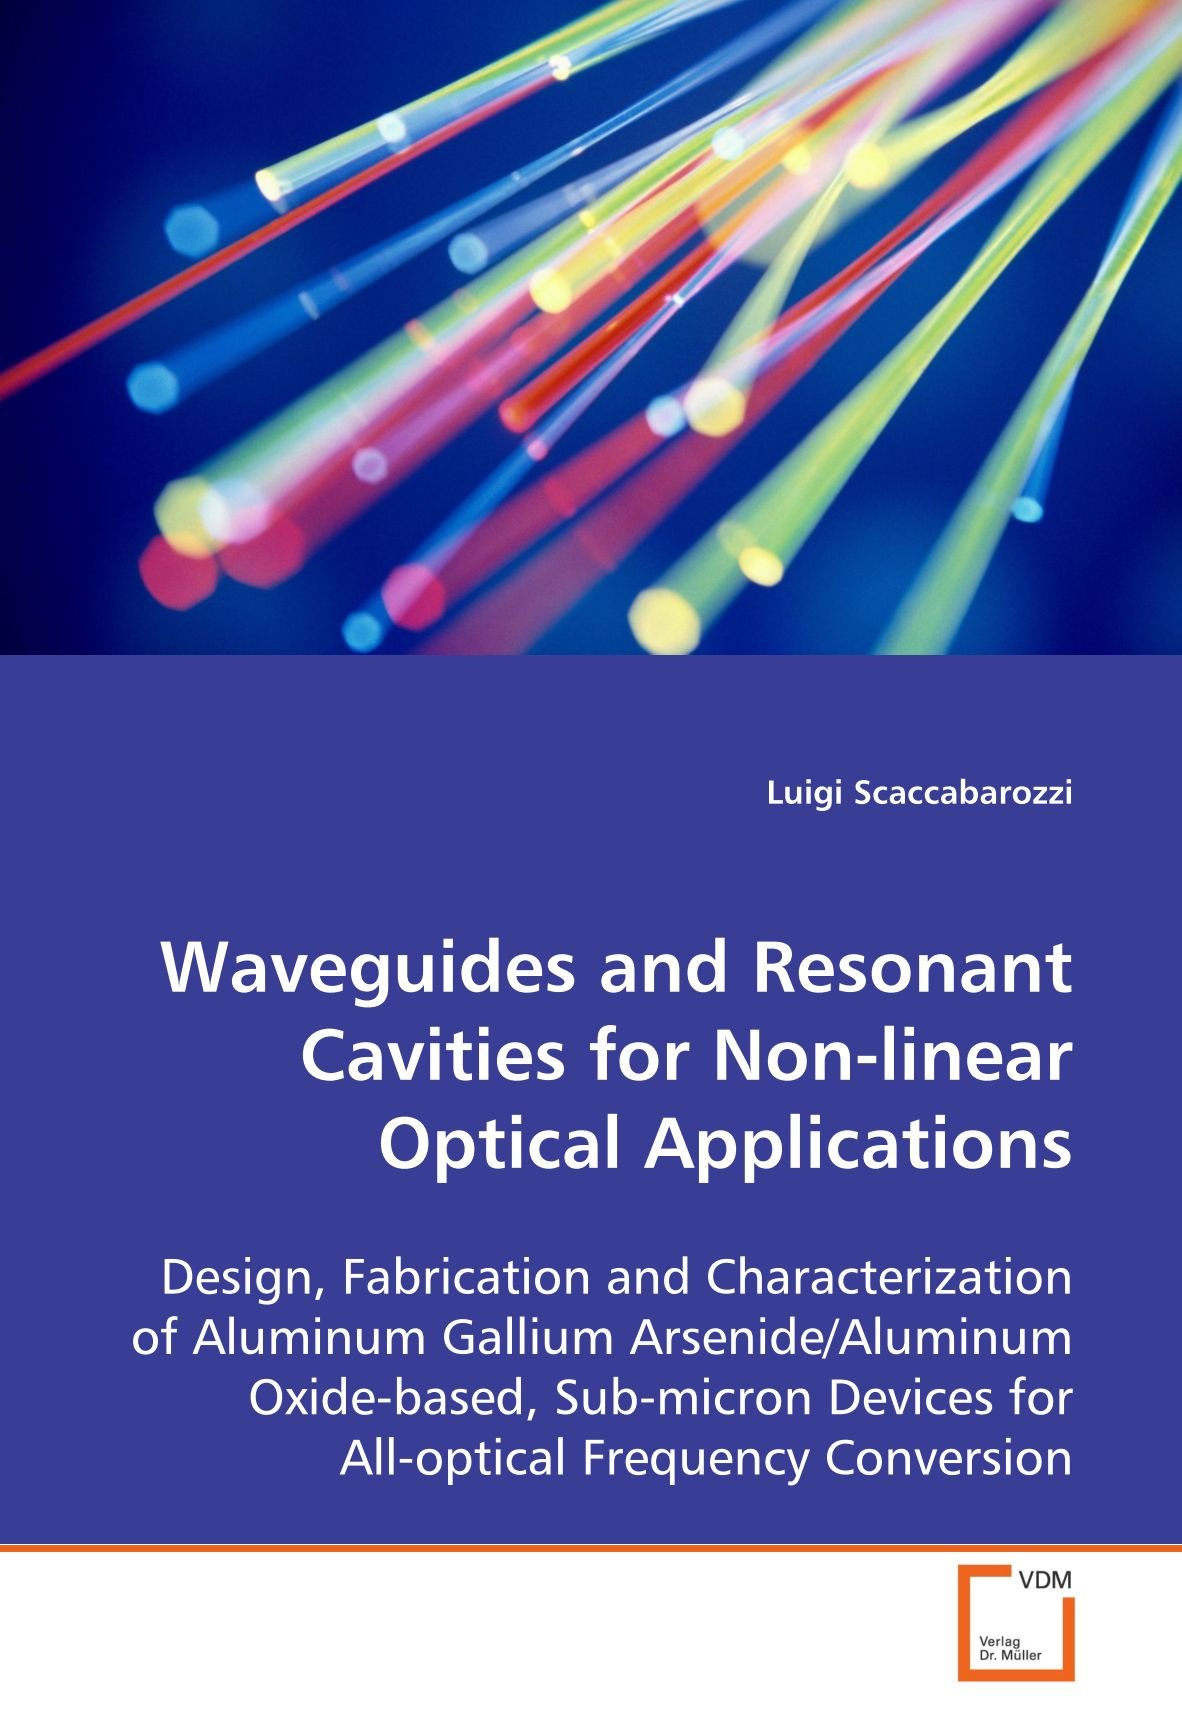 Waveguides and Resonant Cavities for Non-linear Optical Applications: Design, Fabrication and Characterization of Aluminum Gallium Arsenide/Aluminum ... Devices for All-optical Frequency Conversion PDF